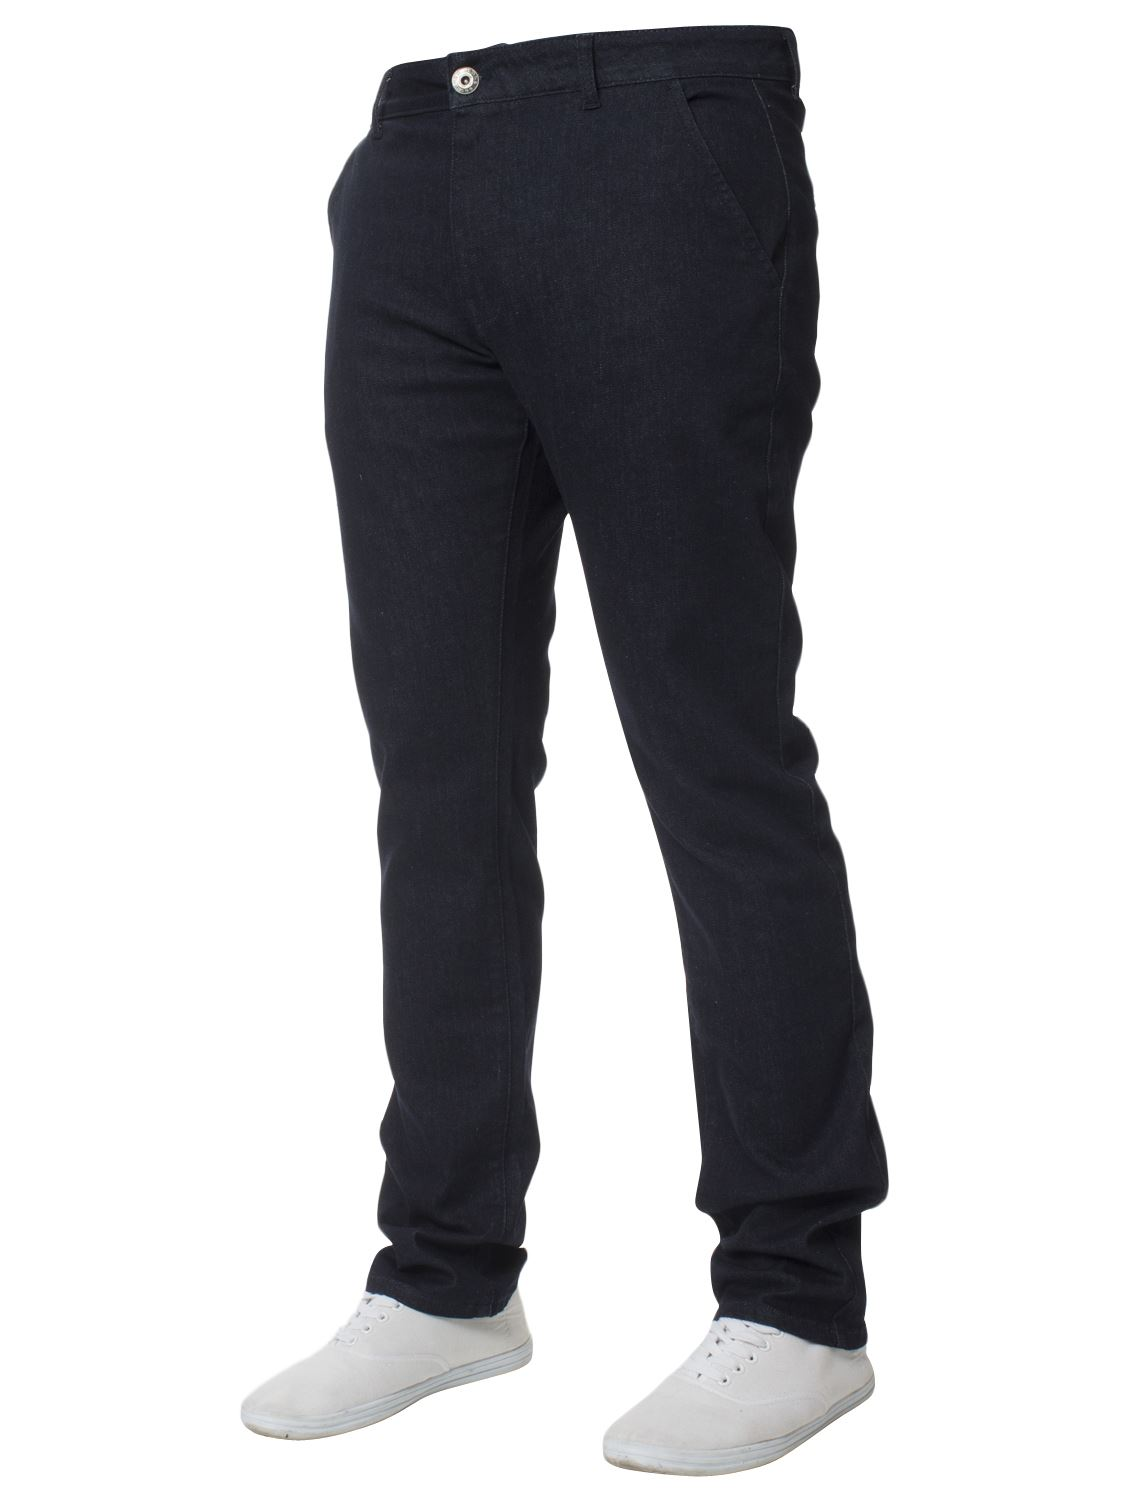 New-Mens-Enzo-Jeans-Denim-Chinos-Skinny-Slim-Fit-Super-Stretch-Trousers-Pants thumbnail 8